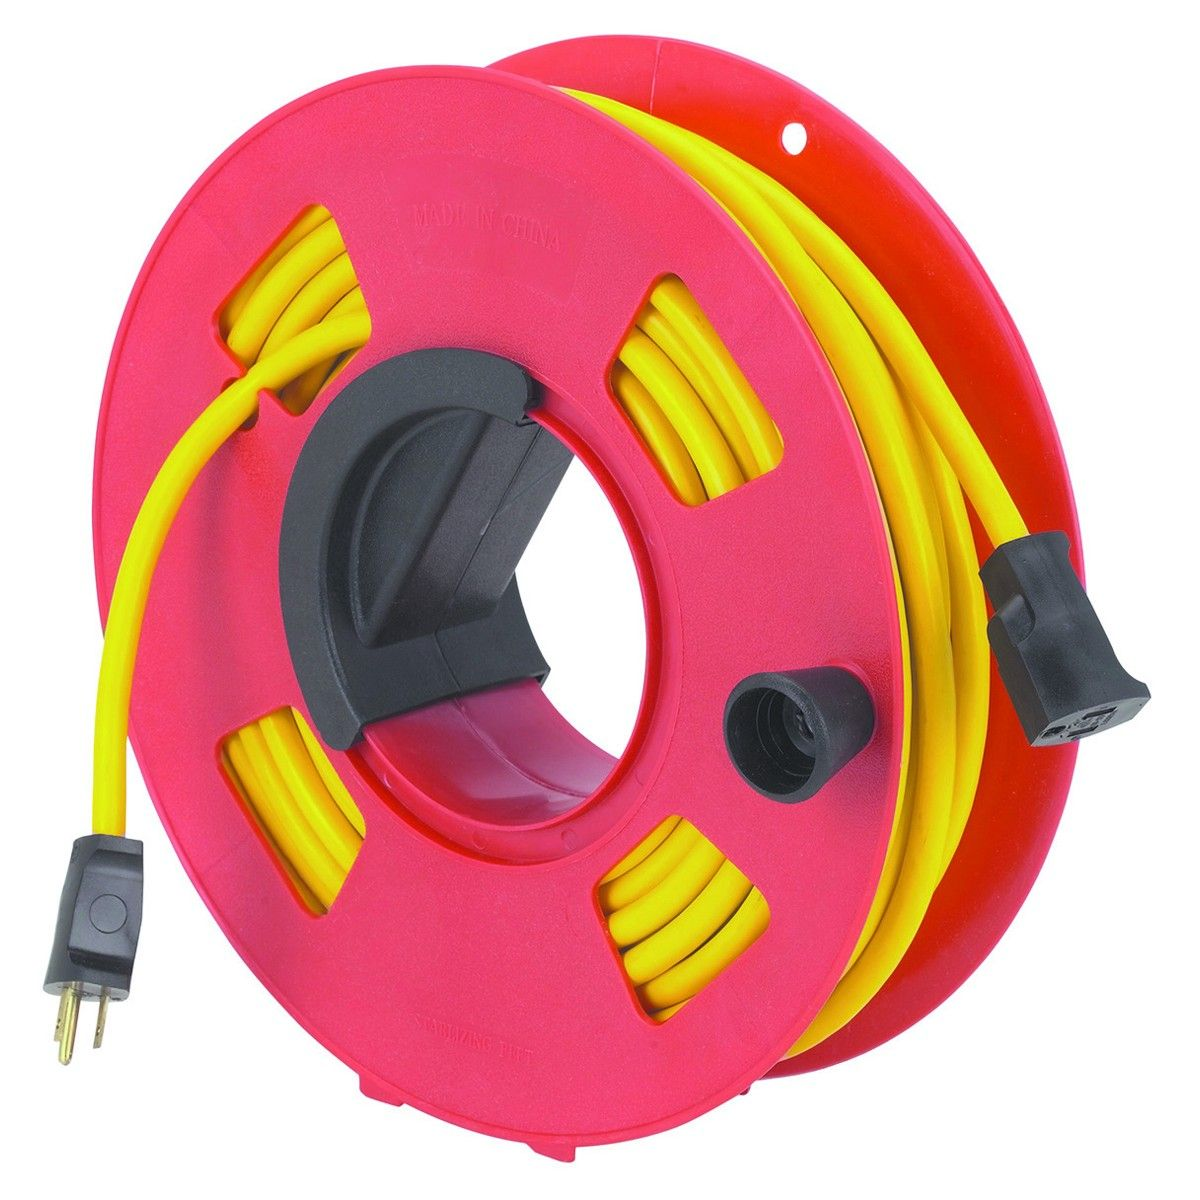 150 Ft Manual Extension Cord Reel Tools Pinterest Retractable W Circuit Breaker Love This Handheld Outdoor Have Two Sizes